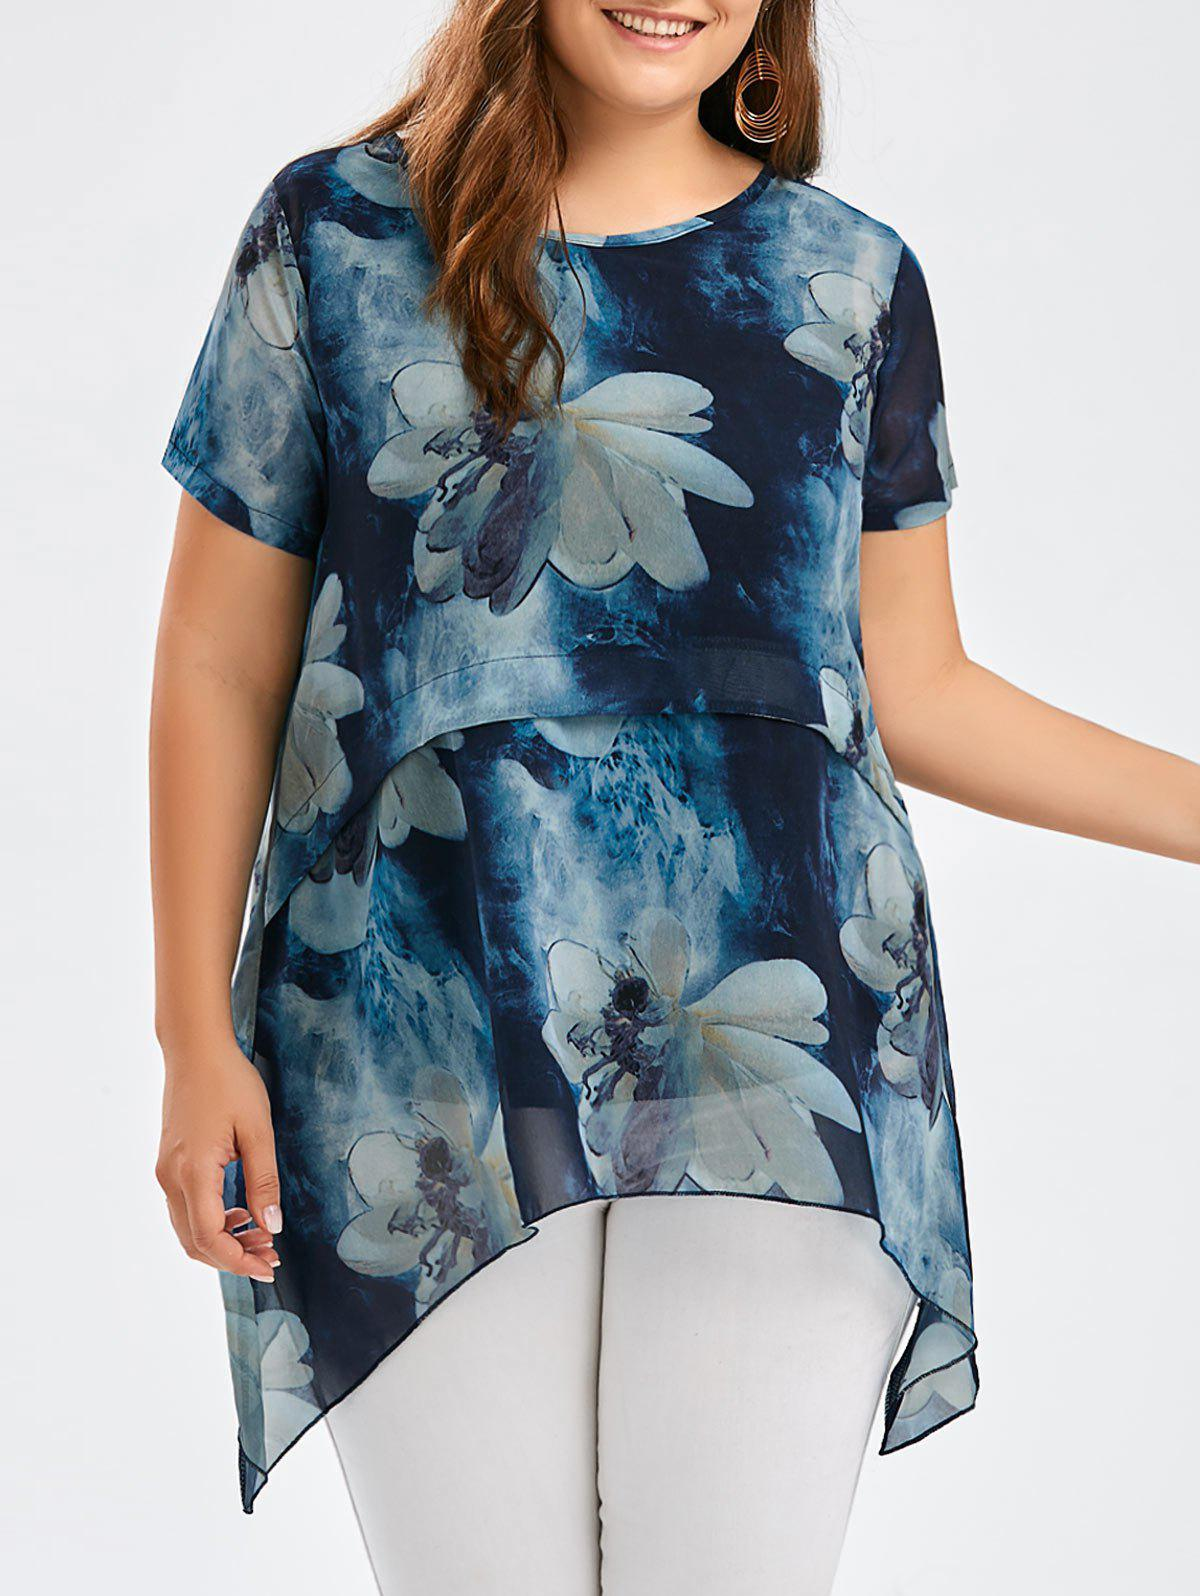 Flower Ink Wash Painting Plus Size Asymmetric Tunic Top 212057601